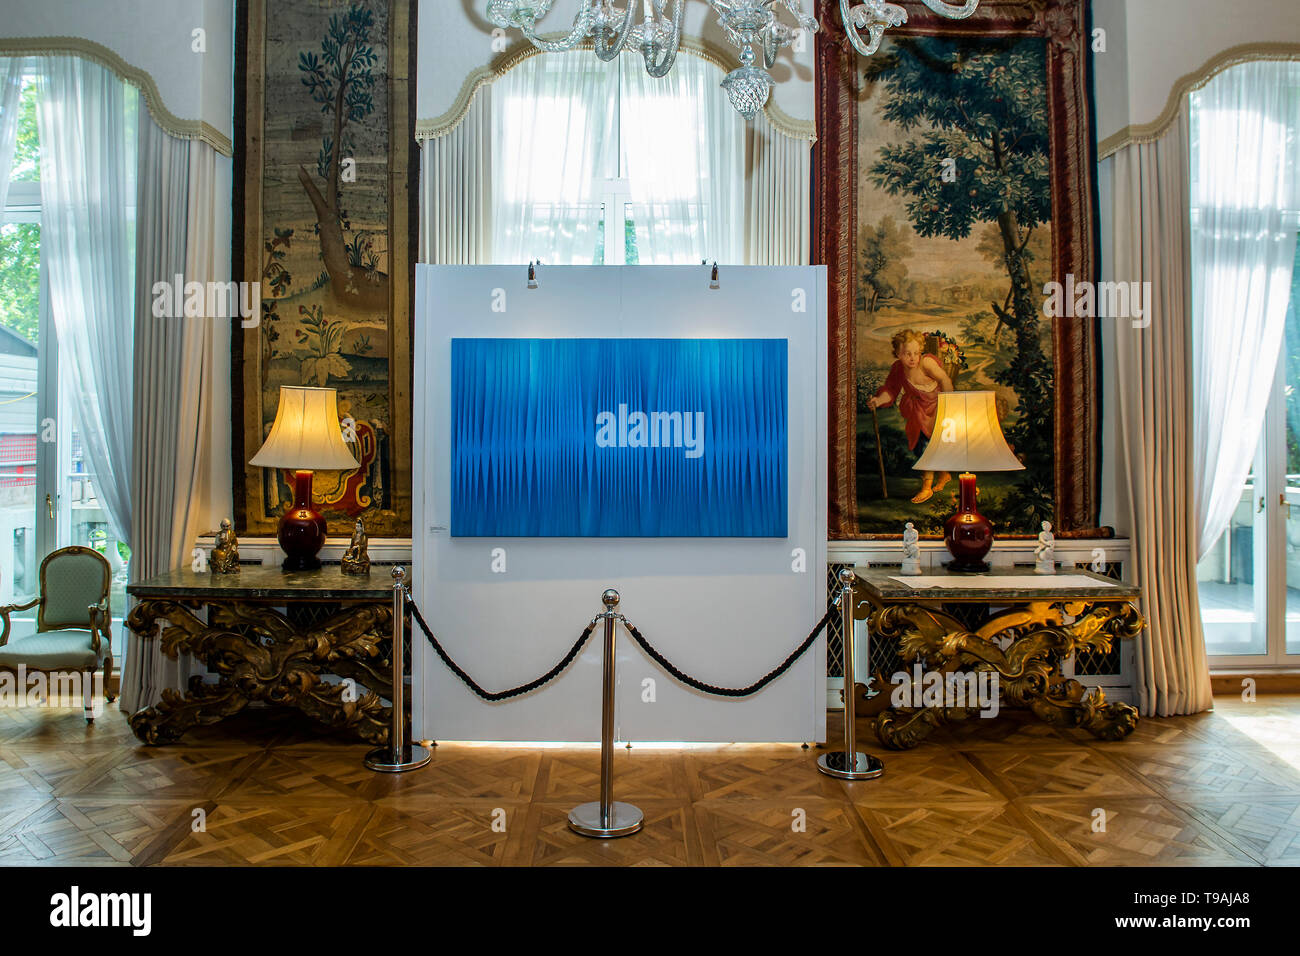 London, UK. 16th May 2019. Pino Manos, Sincronicita azzurro blu iridescente, 2018 - The launch party for Spaziale! at Opera Gallery London at the Italian Embassy.The exhibition includes 40 iconic canvases by Lucio Fontana, Agostino Bonalumi and Enrico Castellani among others. Credit: Guy Bell/Alamy Live News - Stock Image